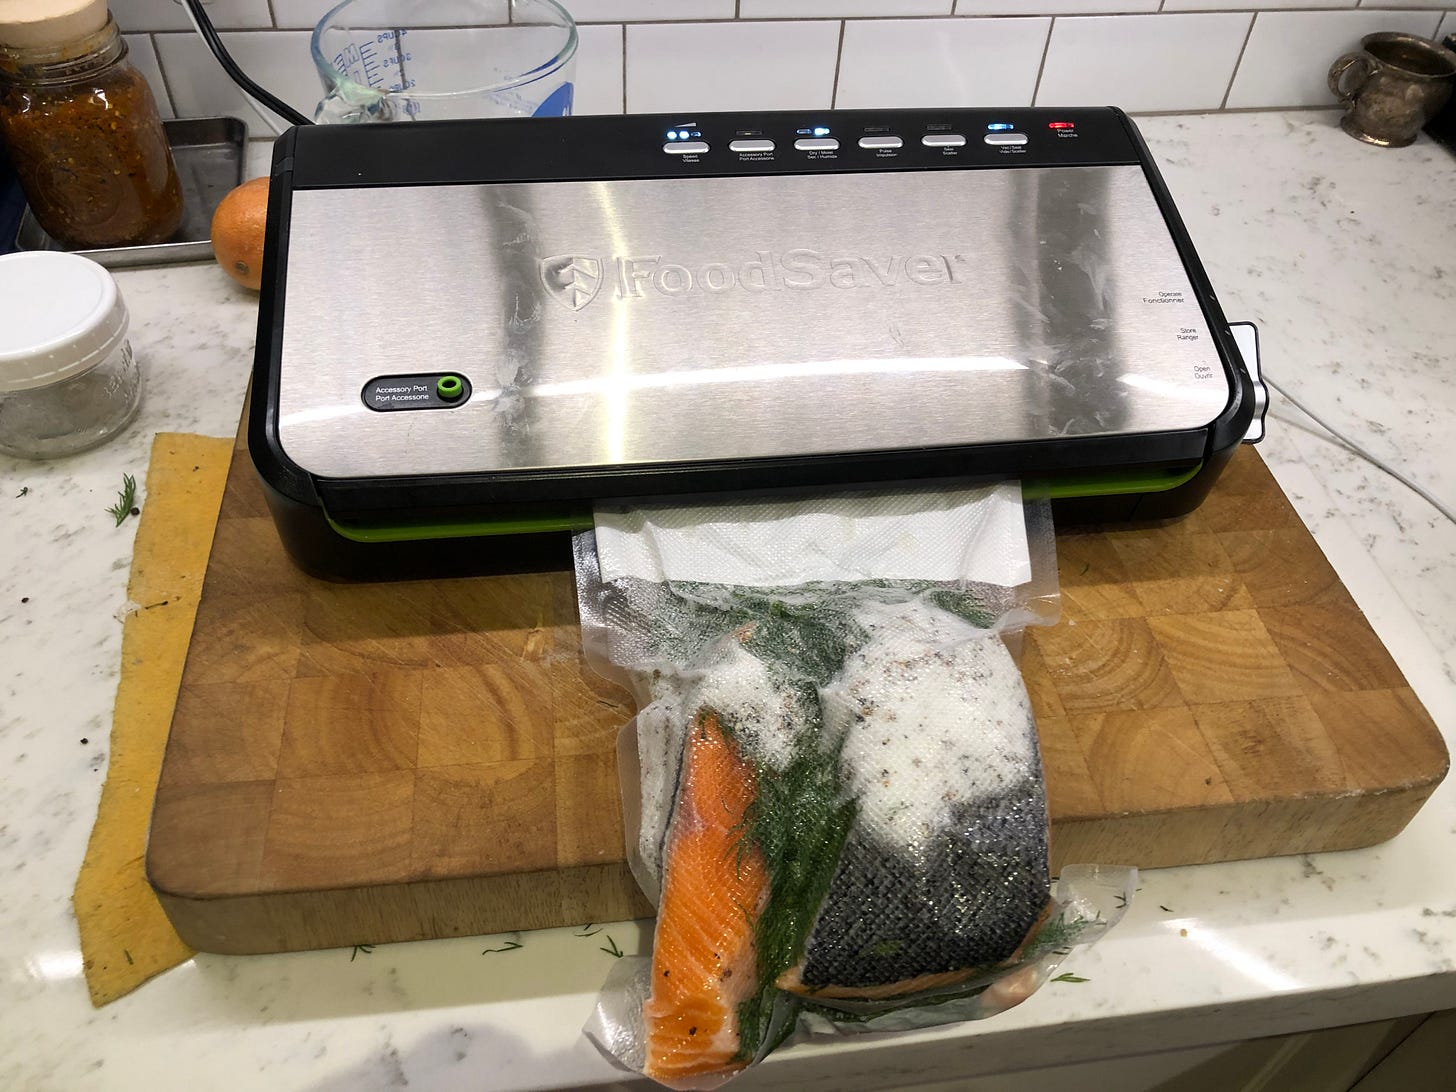 The assembled gravlax being vacuum sealed.